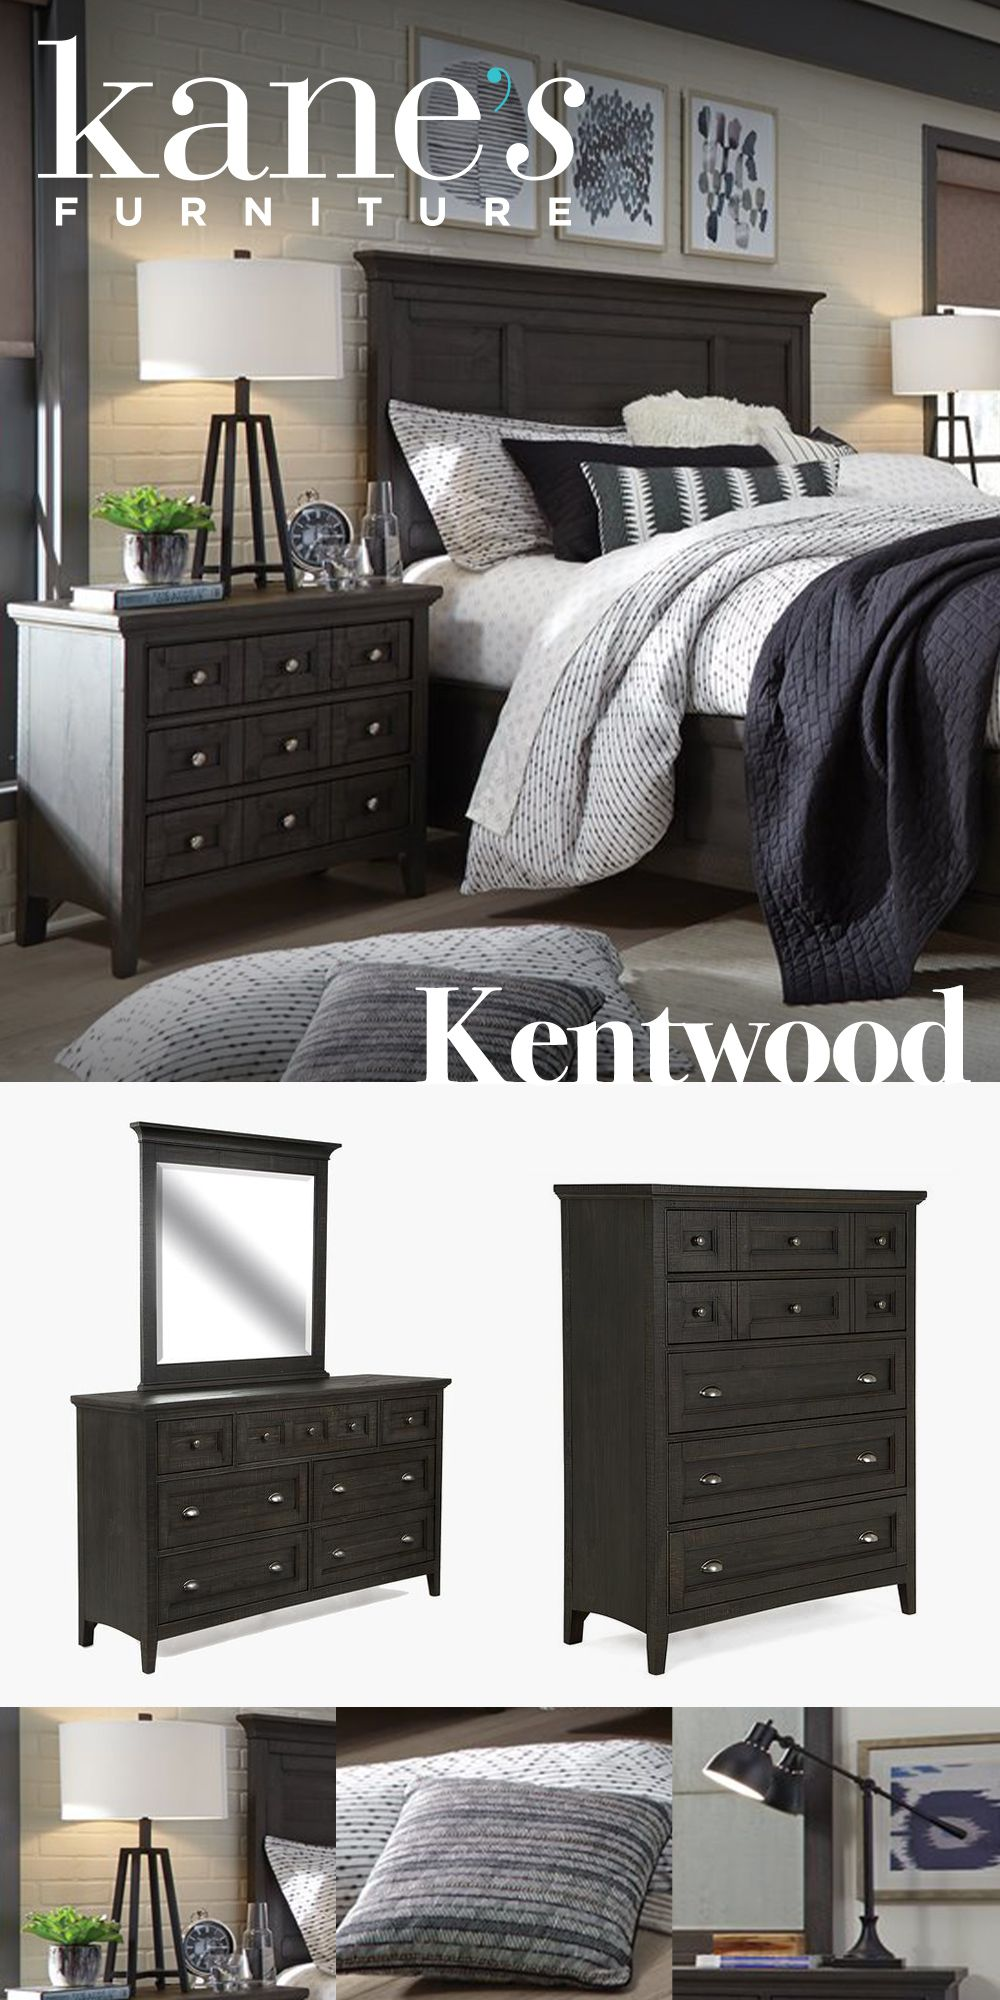 The Contemporary Kentwood Bedroom Set Will Transform Your Bedroom